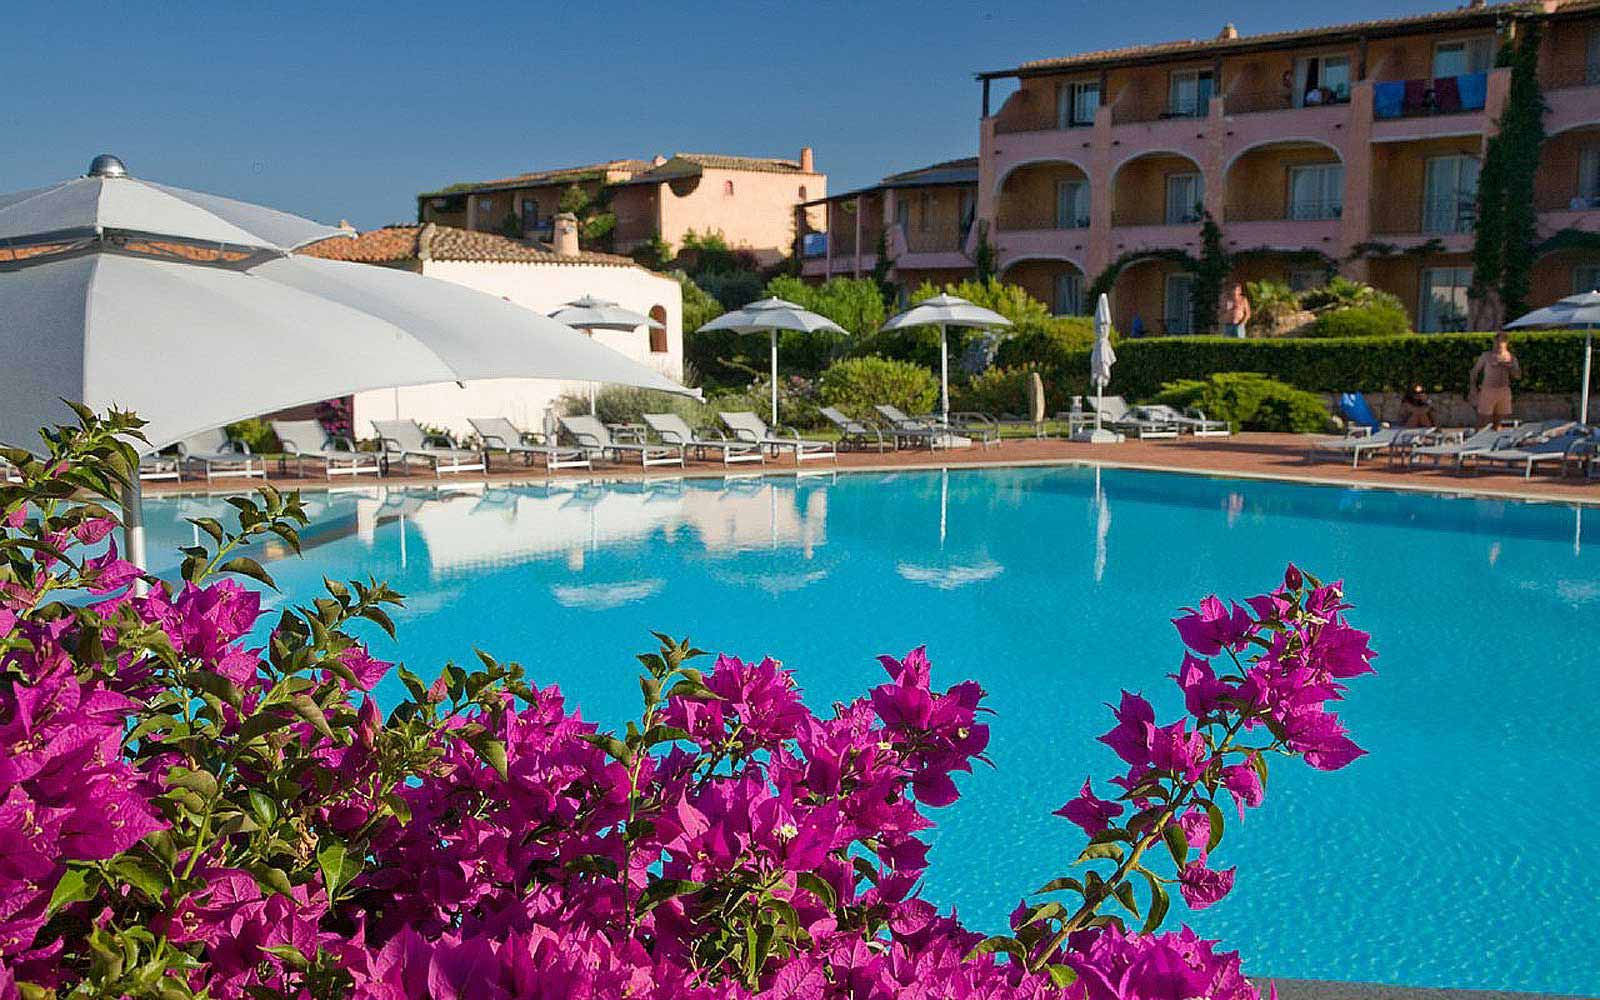 Pool at Grand Hotel in Porto Cervo